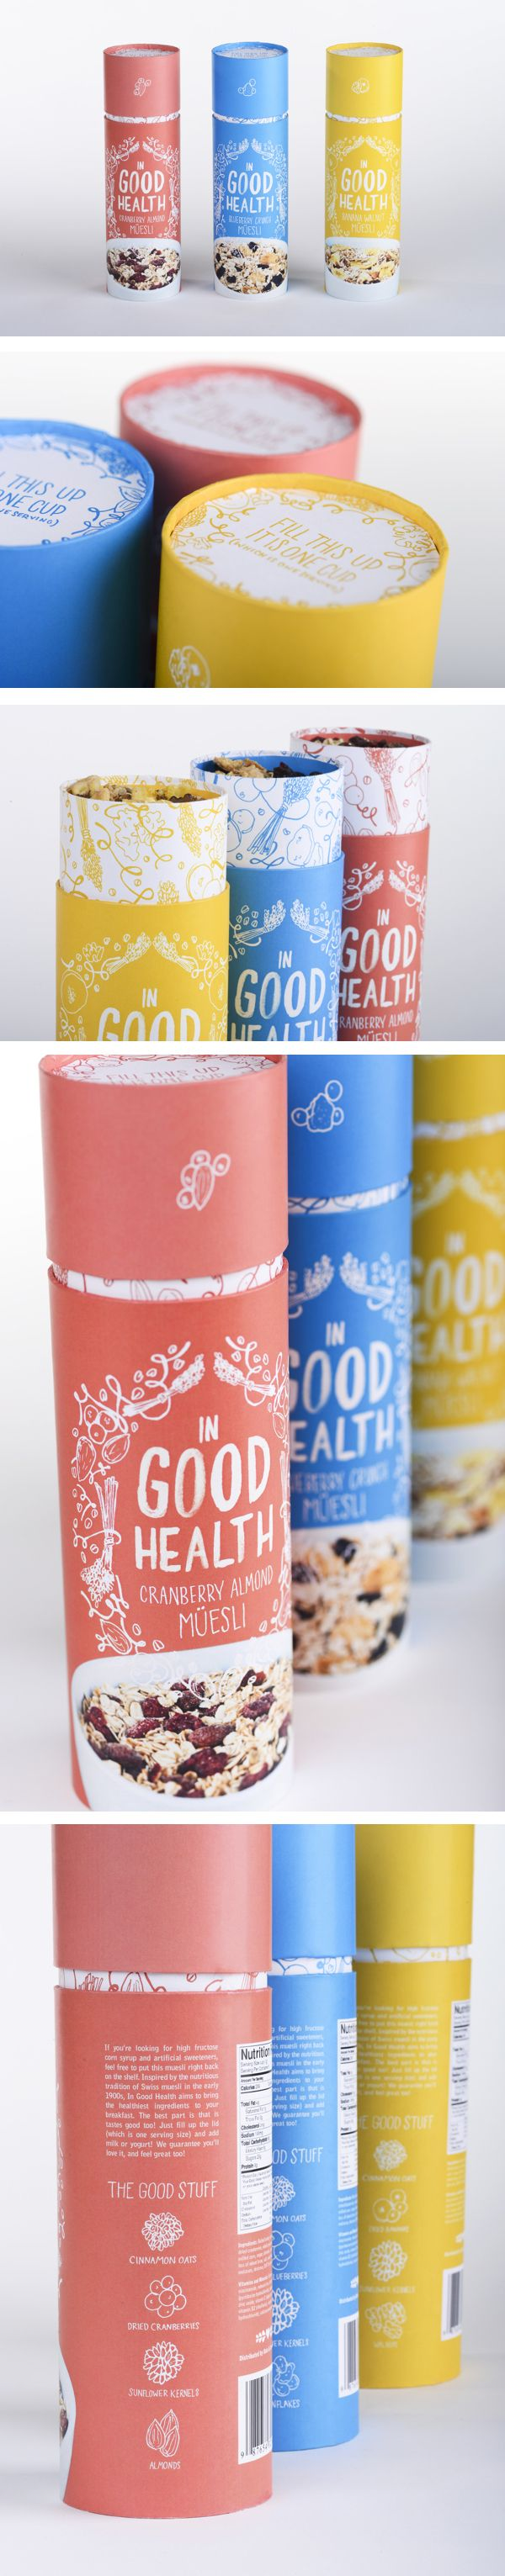 Nice package design for Good Health Muesli | Ashley Hohnstein #packaging #packagedesign